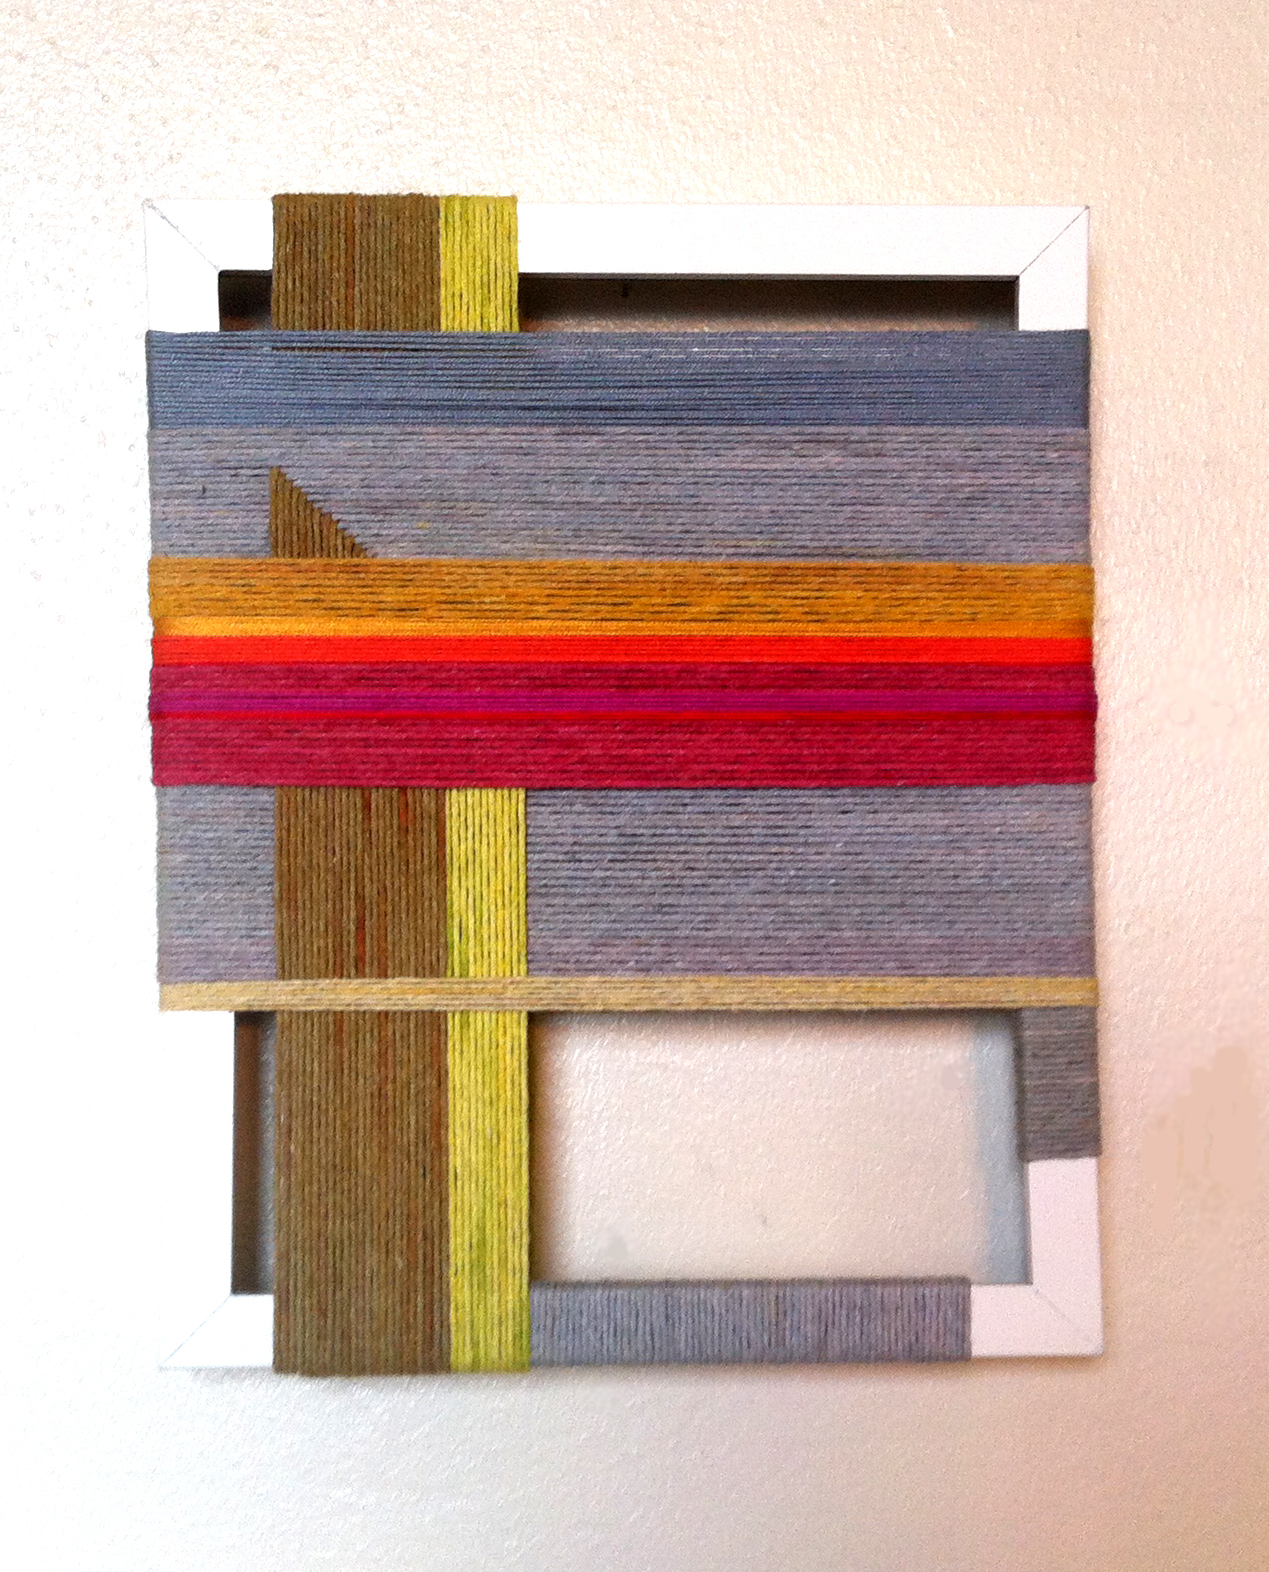 laurenbahr :     Number 8. Lauren Bahr, 9 x 11 inches, 2012, hand dyed rope around a reclaimed frame.